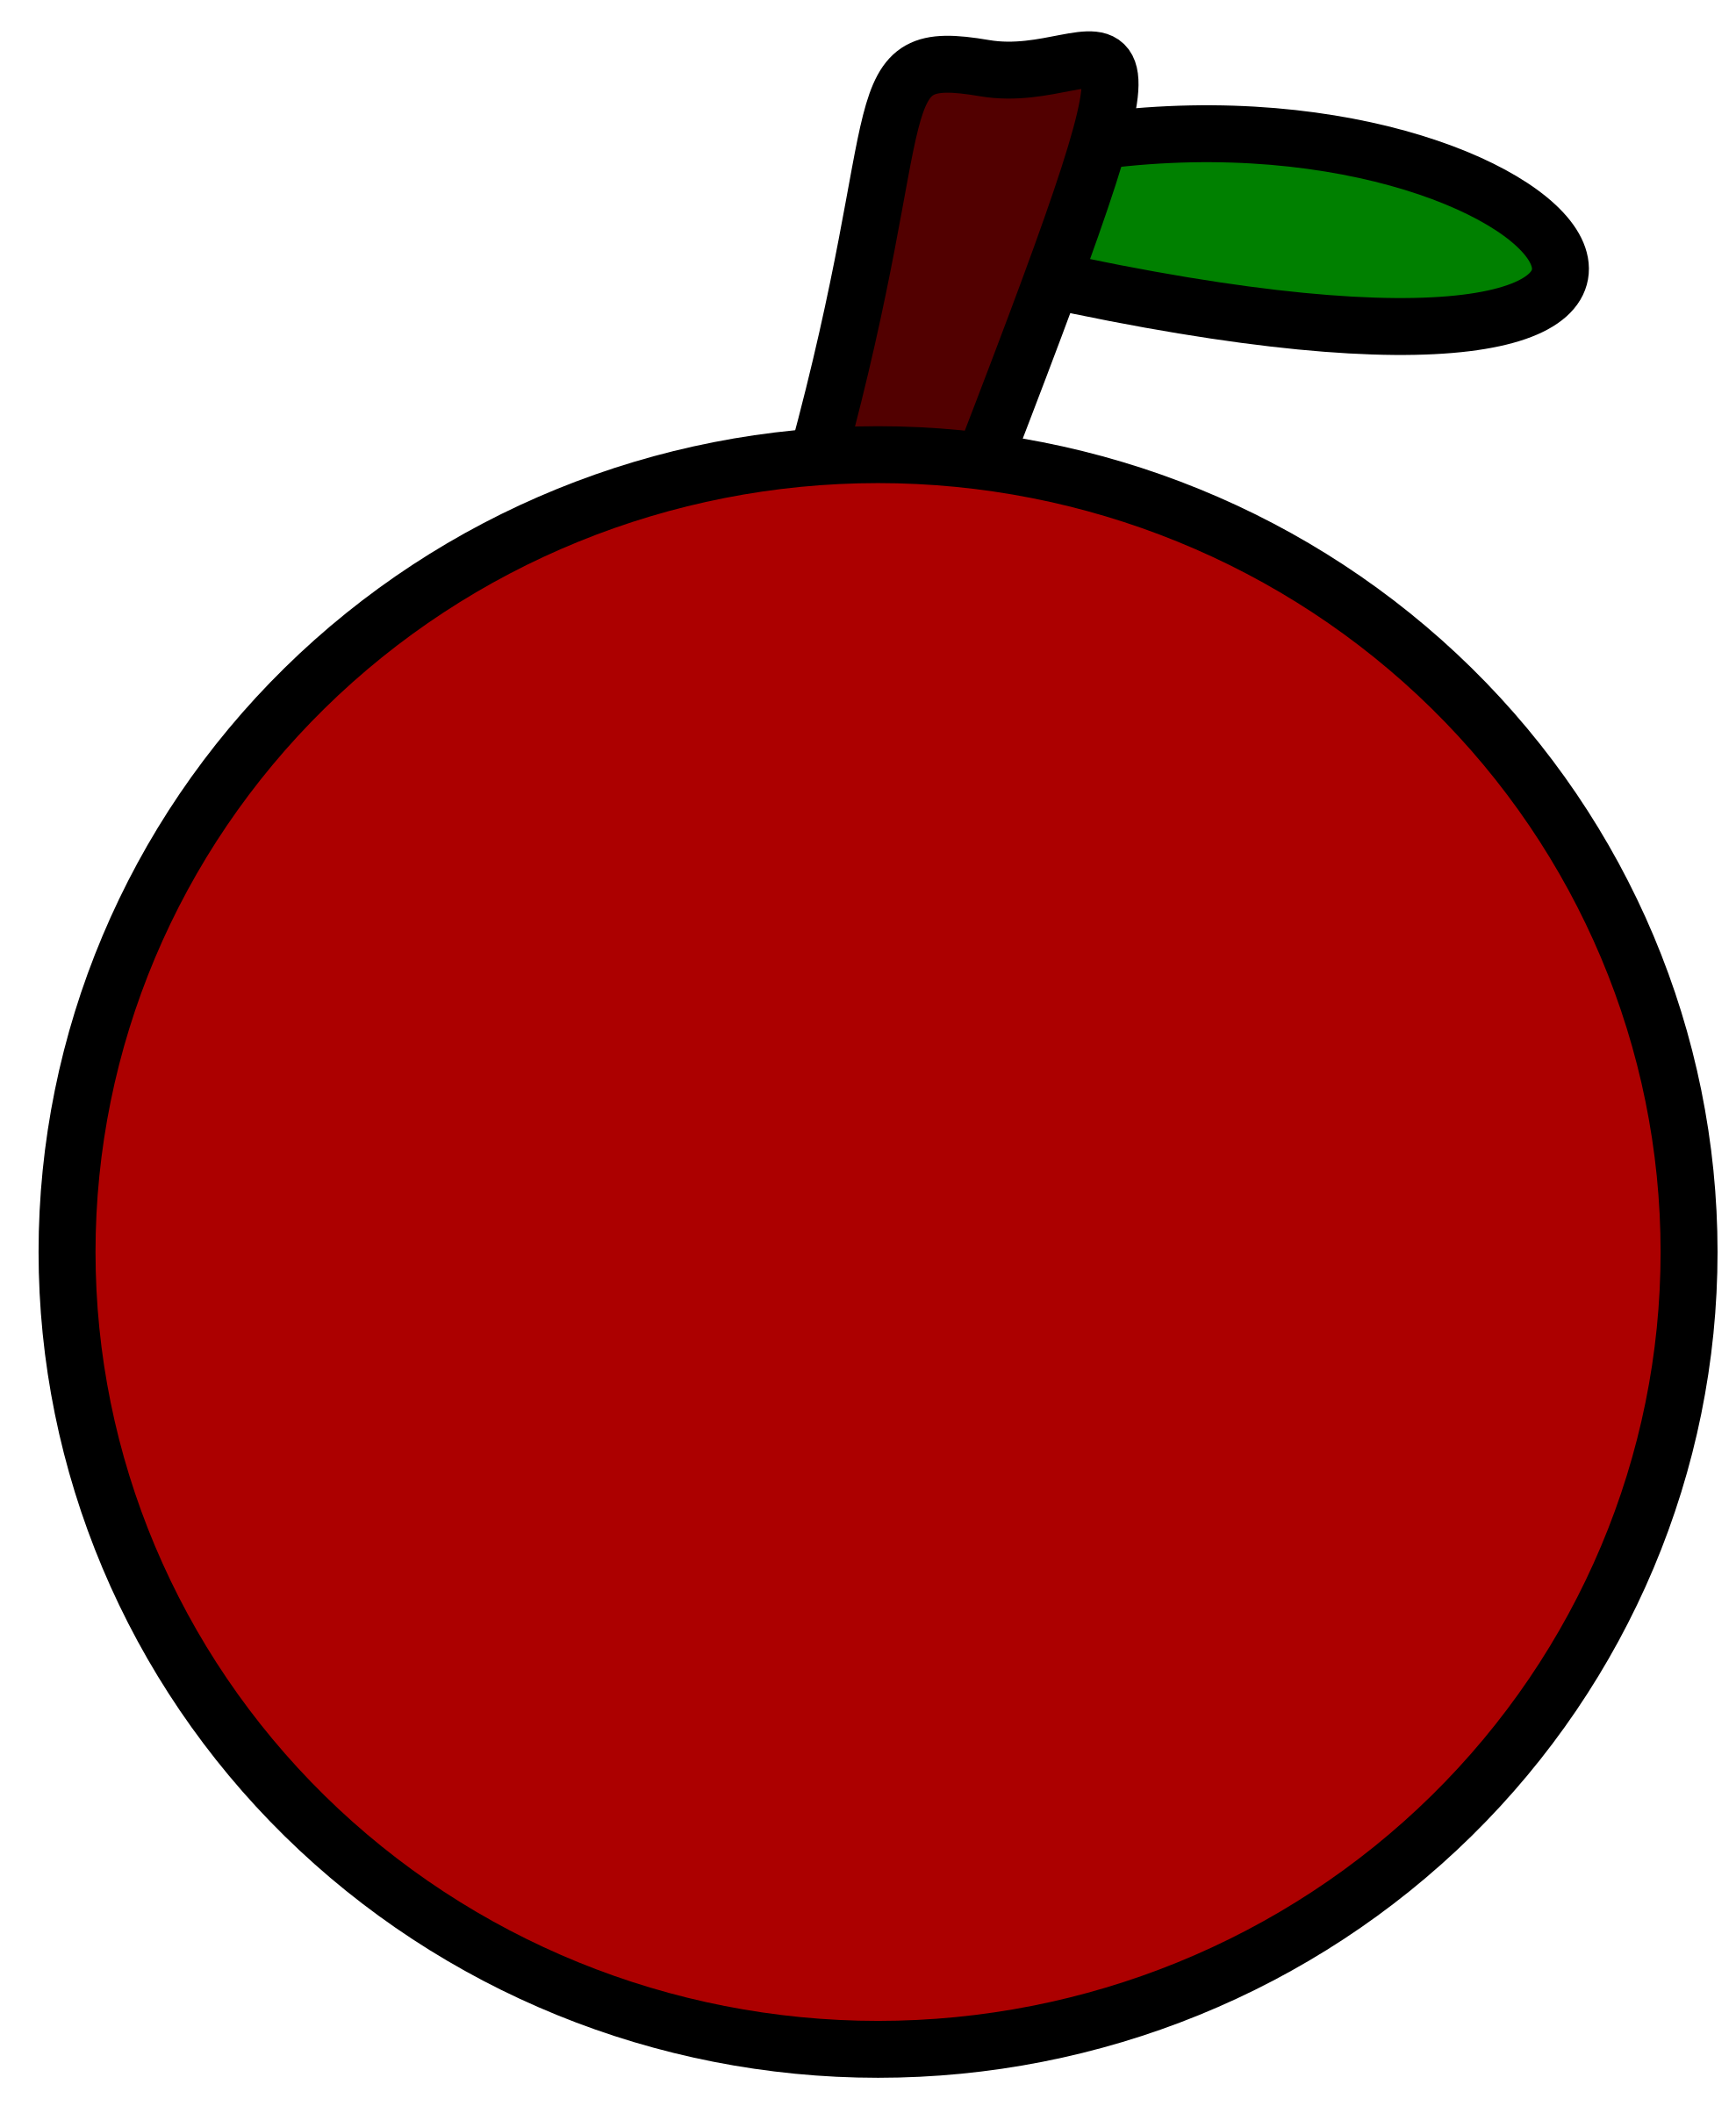 Very simple apple by laobc